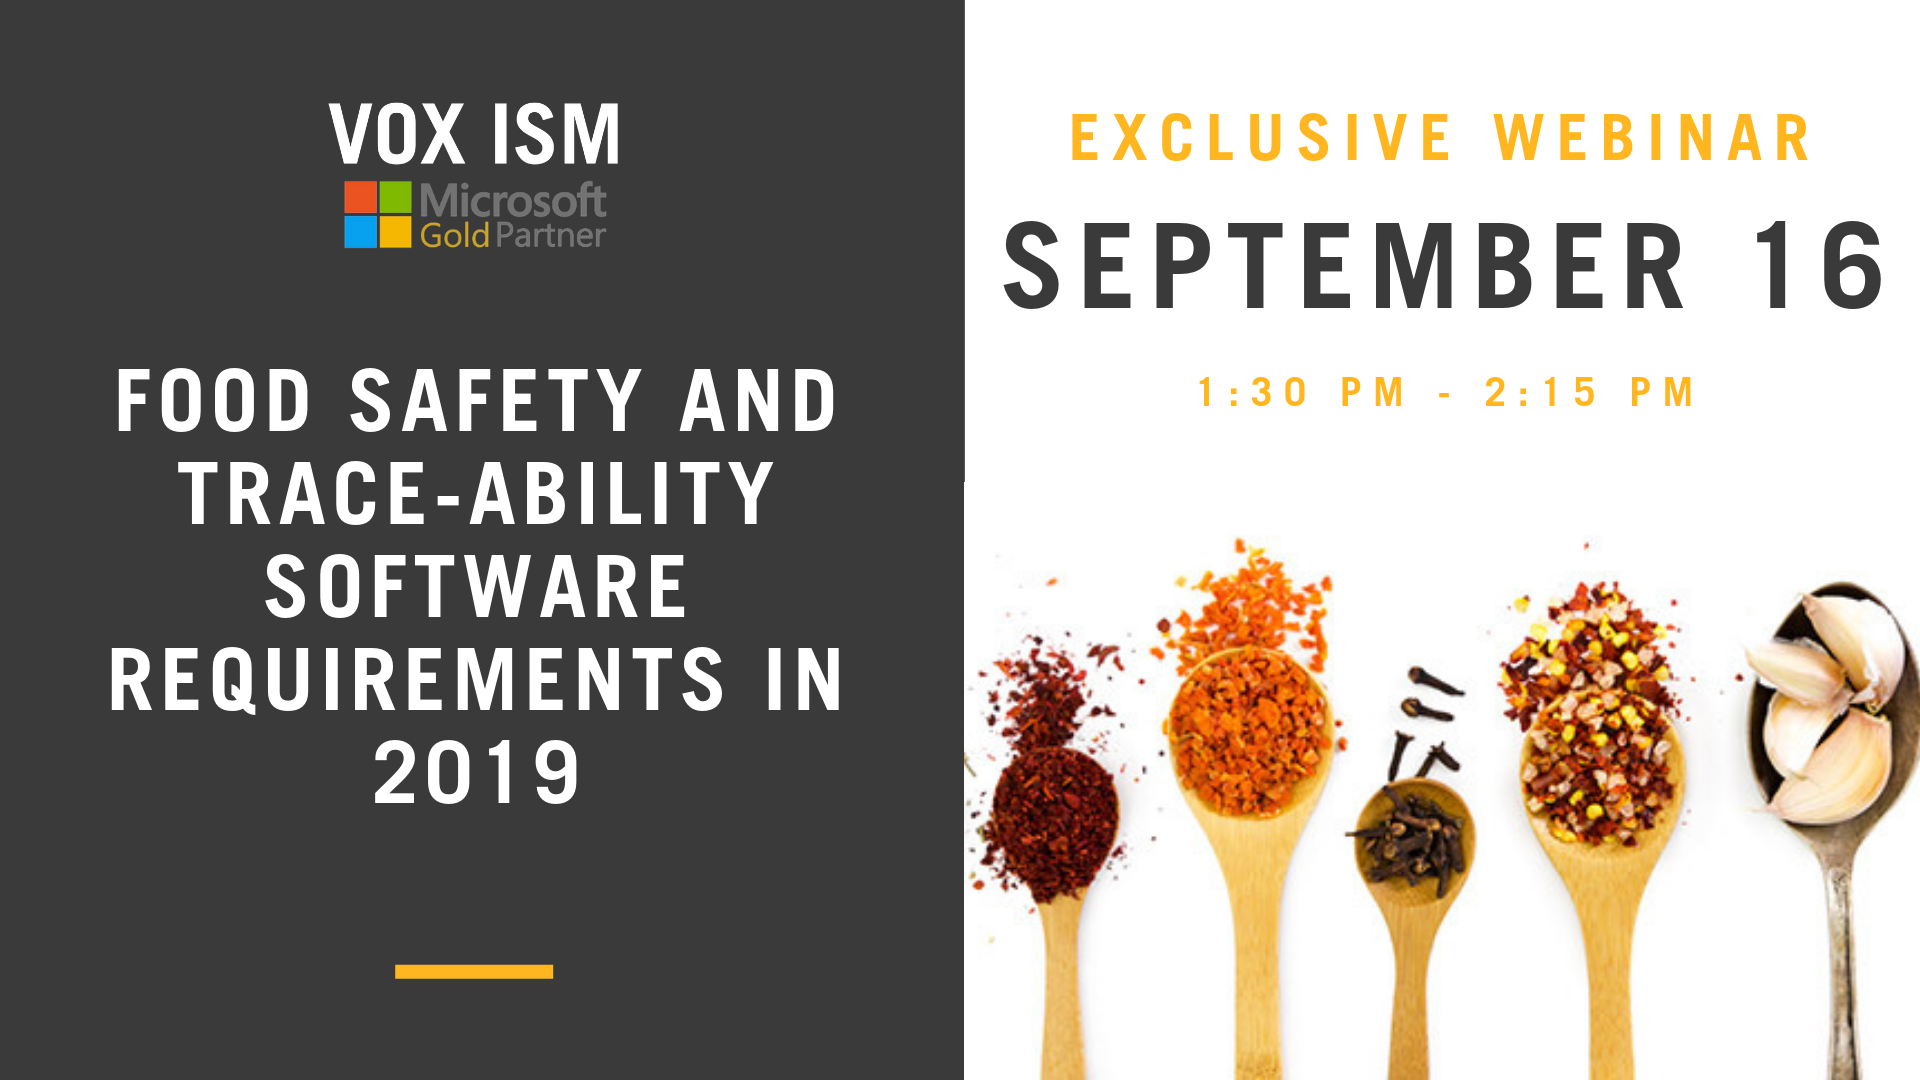 Food Safety and Trace-ability software requirements in 2019 - September 16 - Webinar - VOX ISM